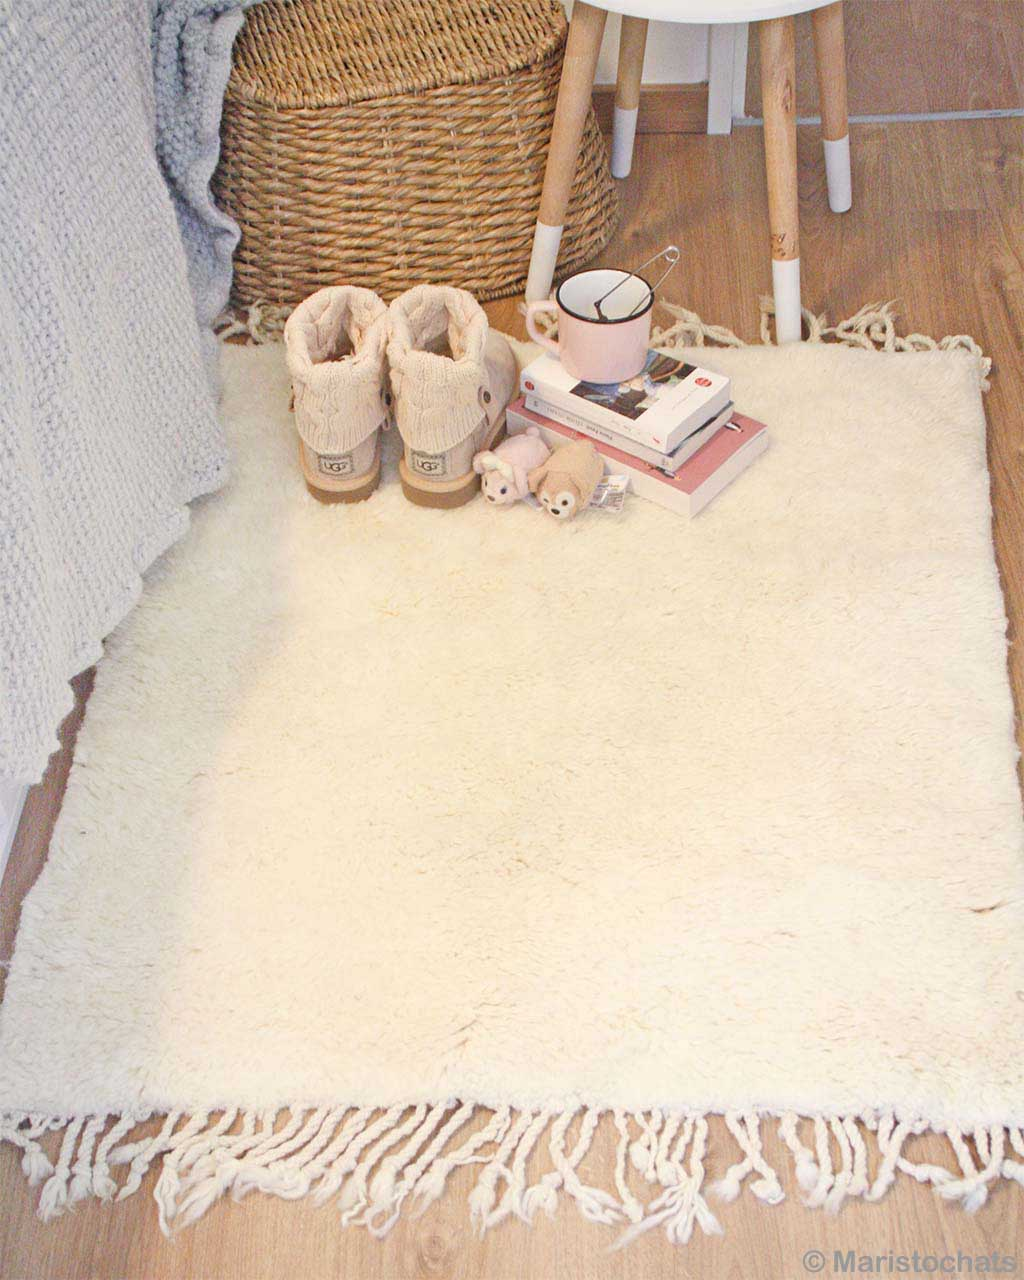 shoes cup books and toys moroccan made modern rugs